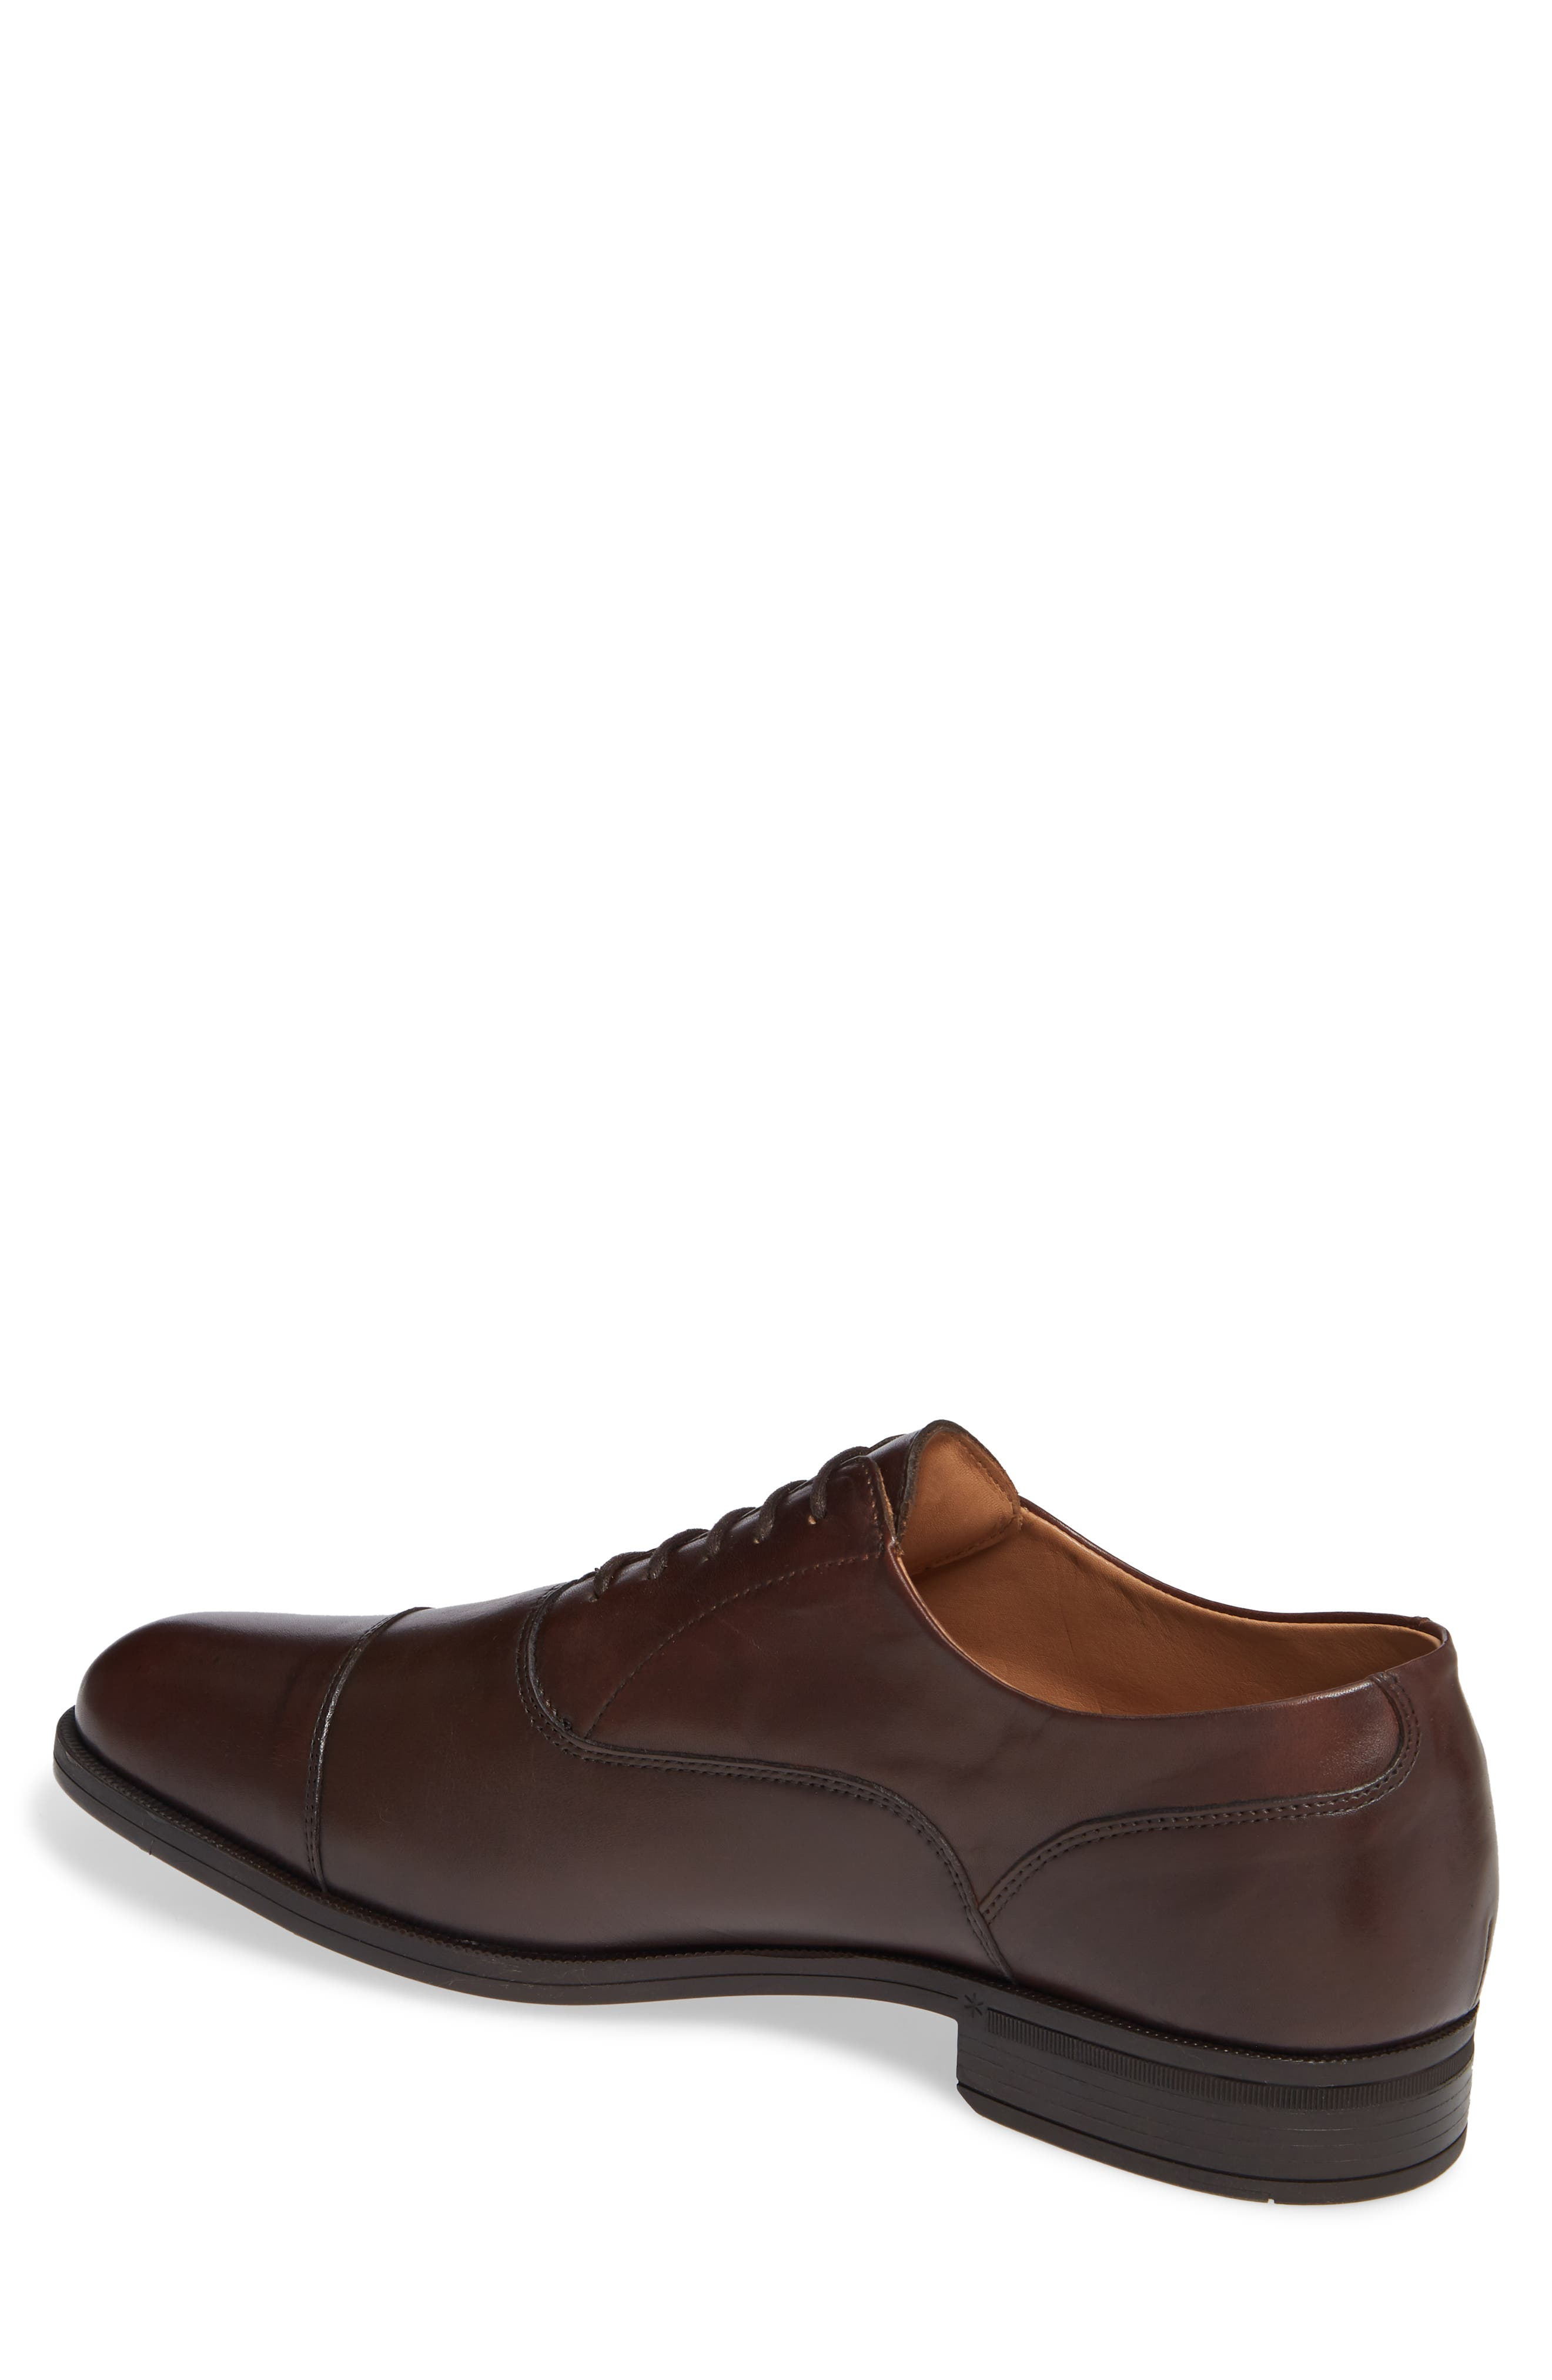 VINCE CAMUTO, Iven Cap Toe Oxford, Alternate thumbnail 2, color, DARK BROWN LEATHER